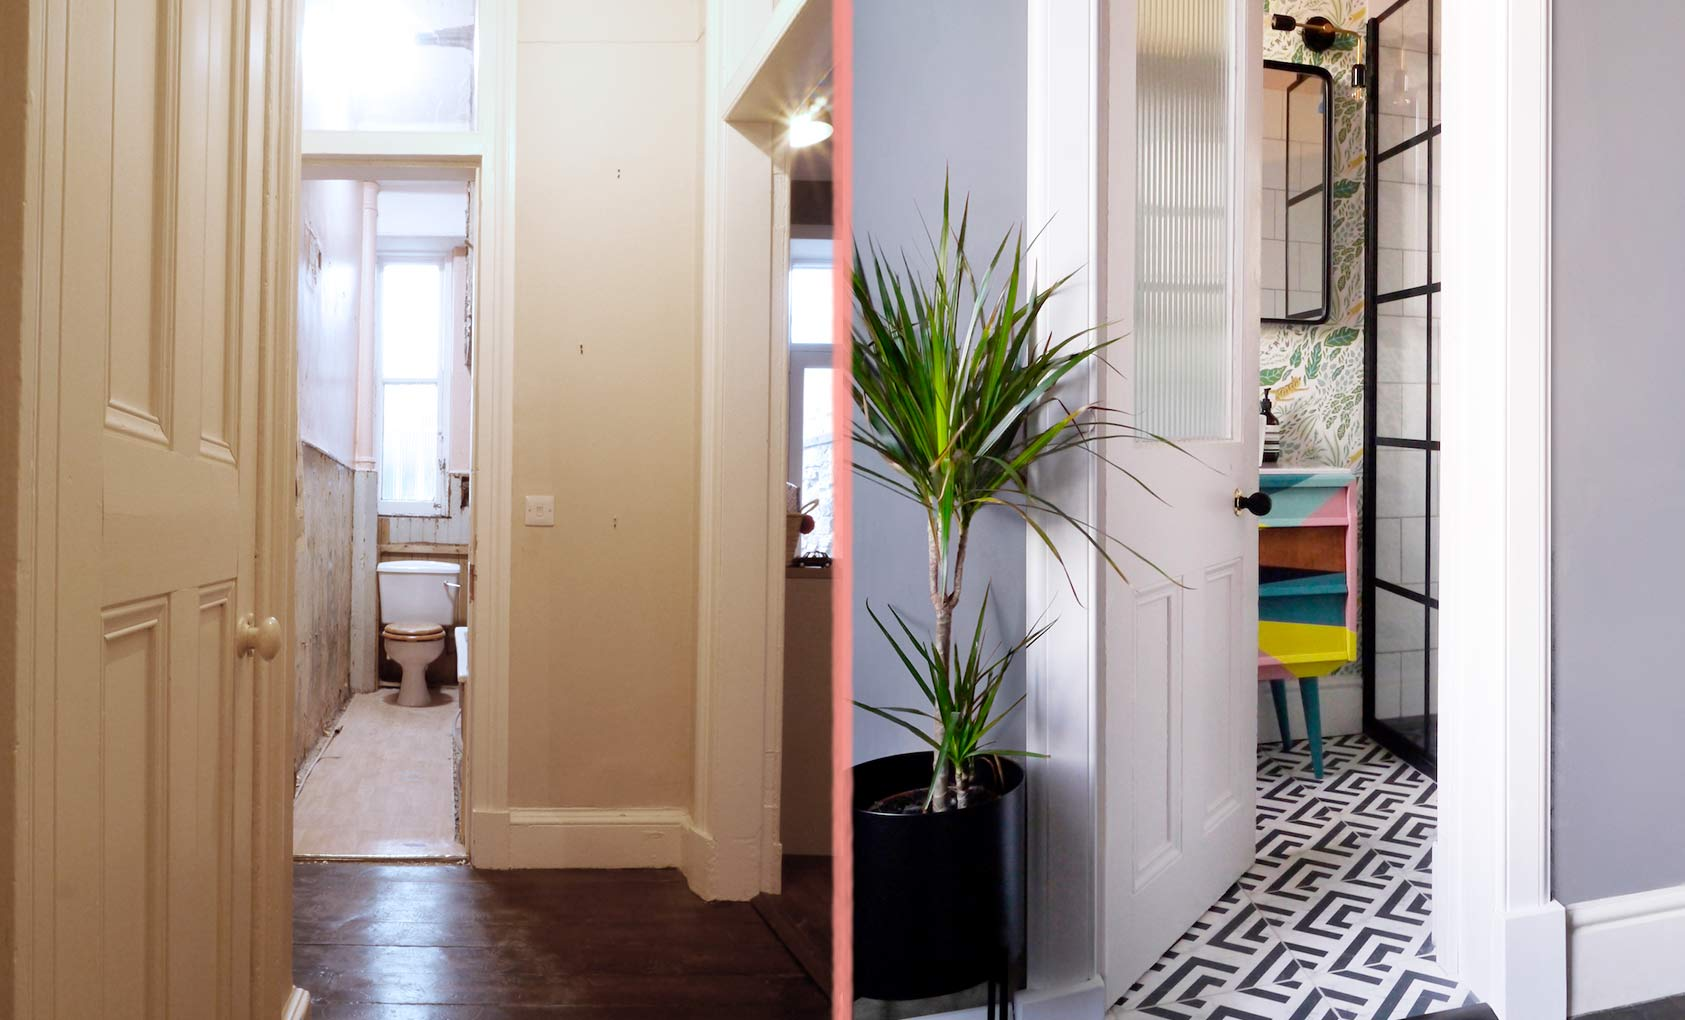 Before & After: From Eyesore to Eye-Catching in Scotland, Design*Sponge